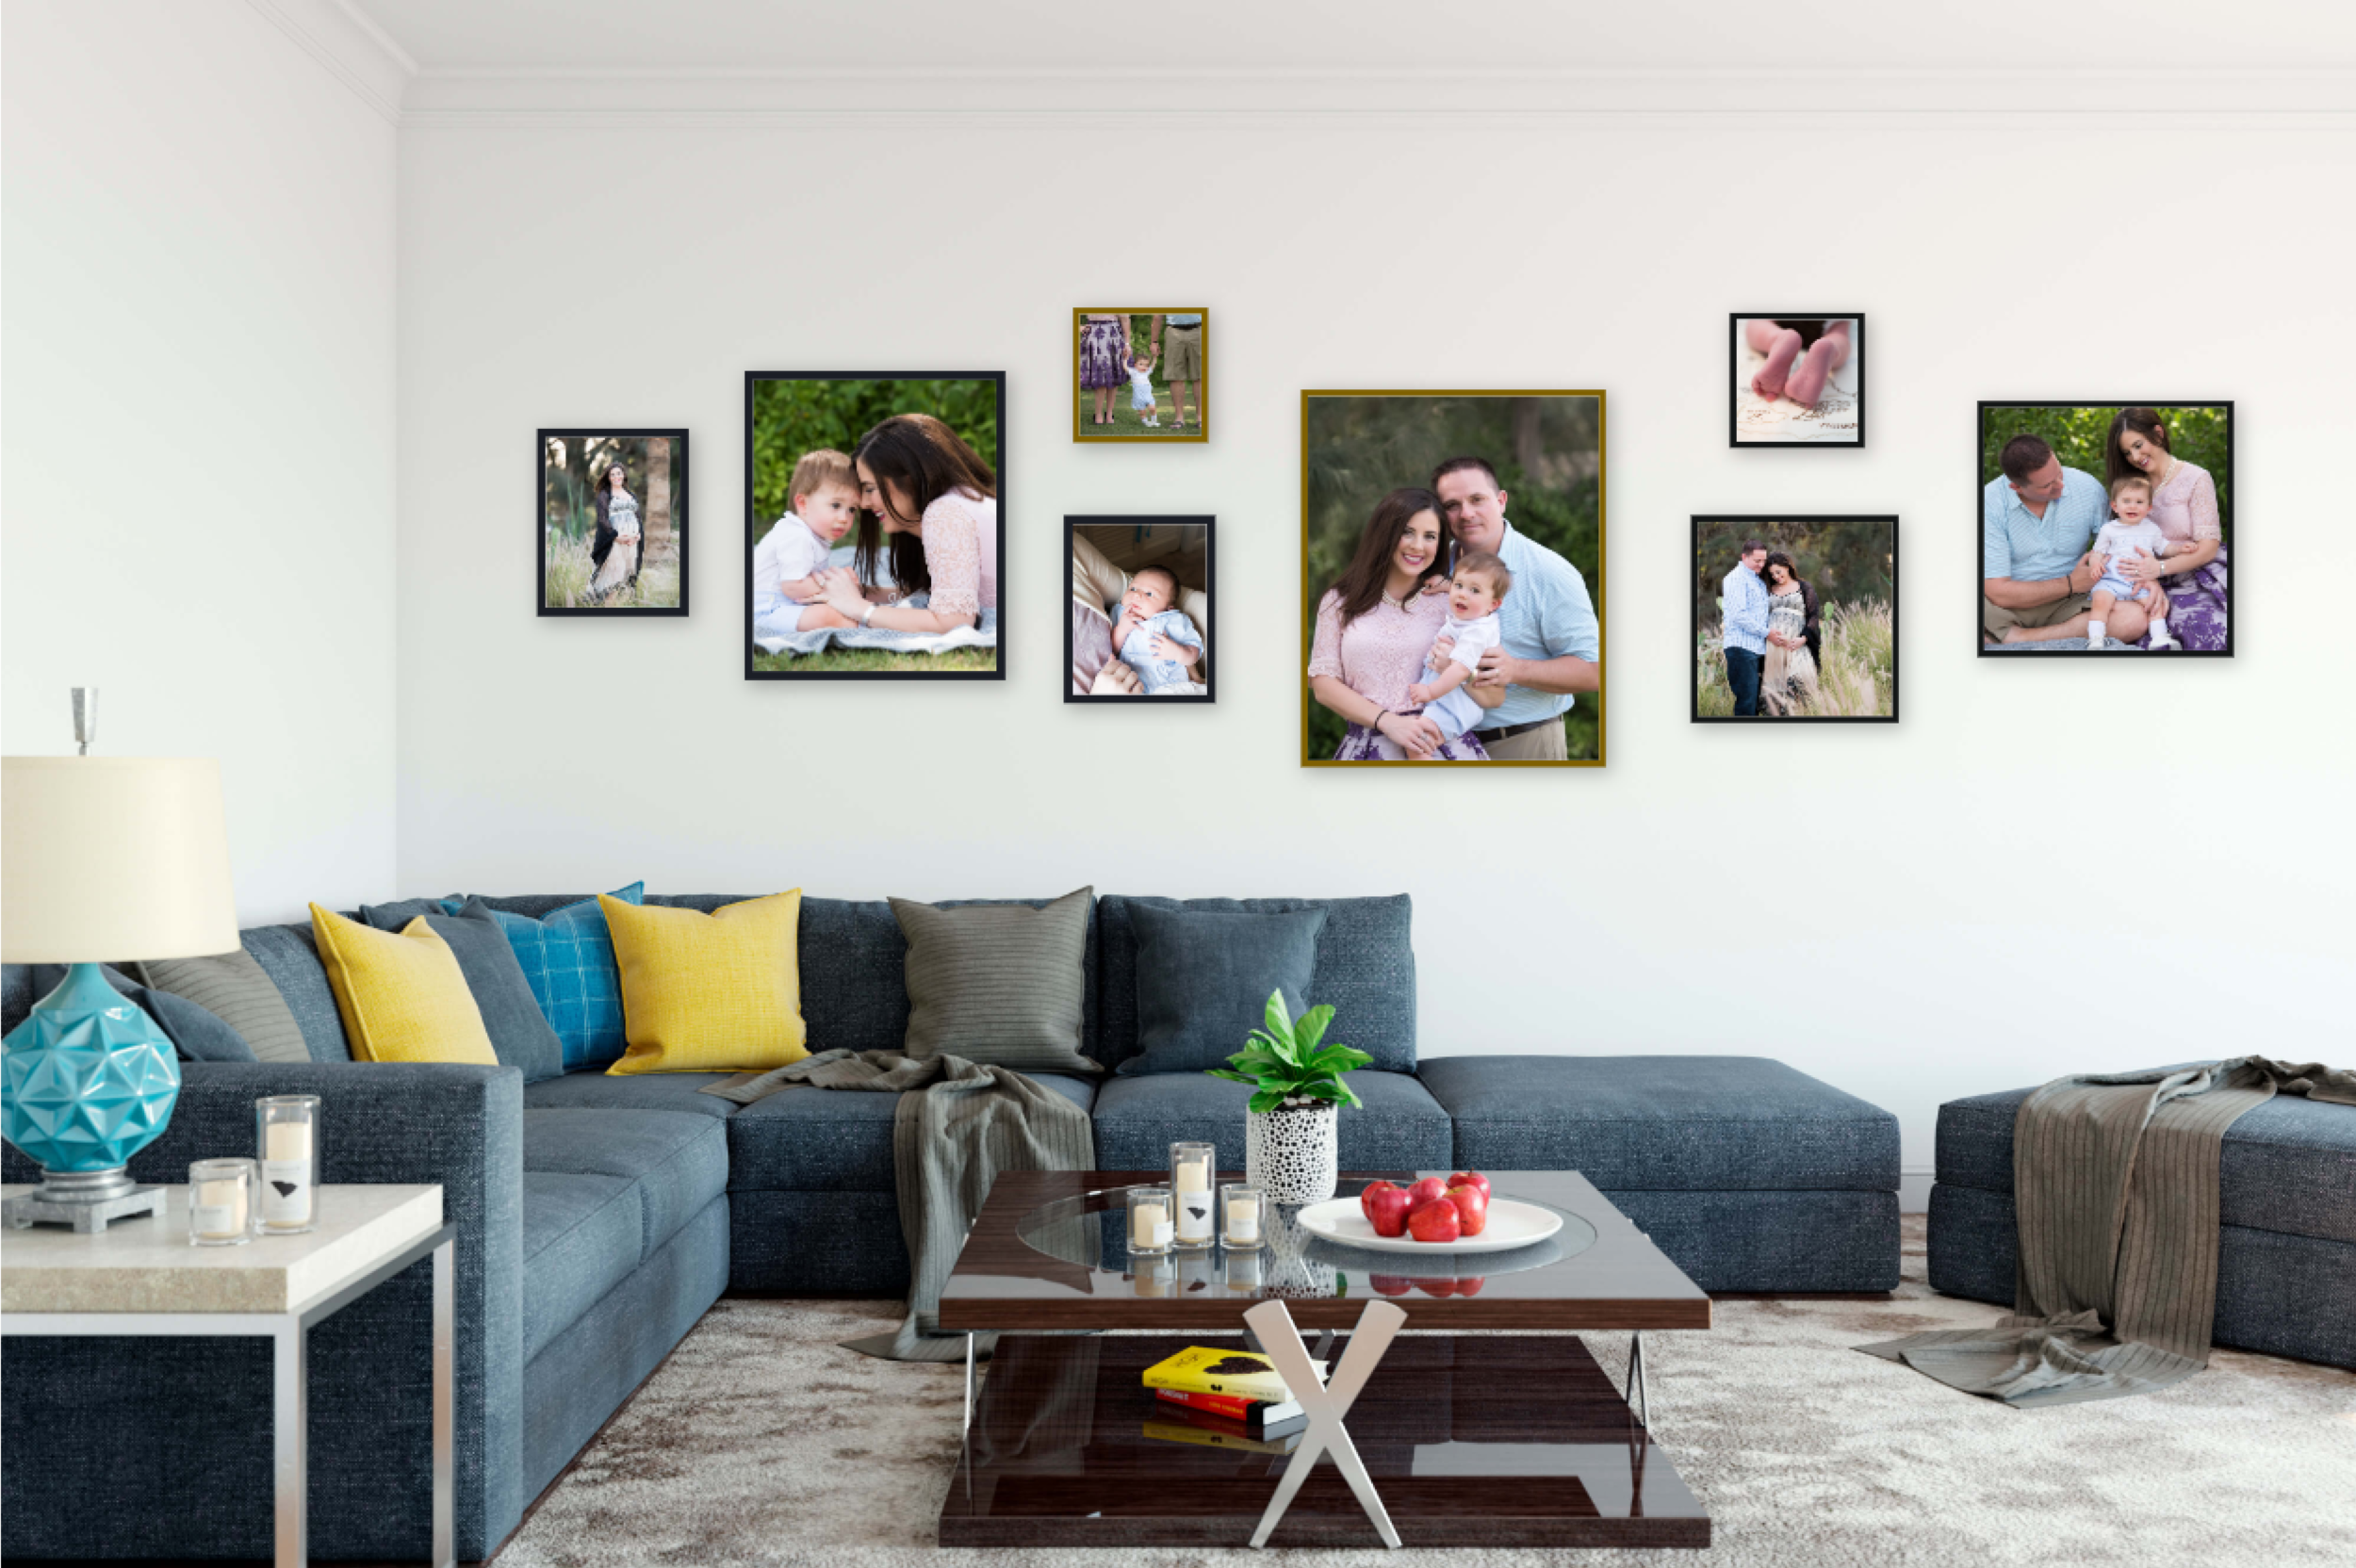 "Multiple Family Events Gallery Wall Inspiration  Frame Sizes (from left to right): 11x14"", 20x24"", 10x10"", 11x14"", 24x30"", 10x10"", 16x16"", 20x20""  Total Gallery Wall Size: 140""x40"""